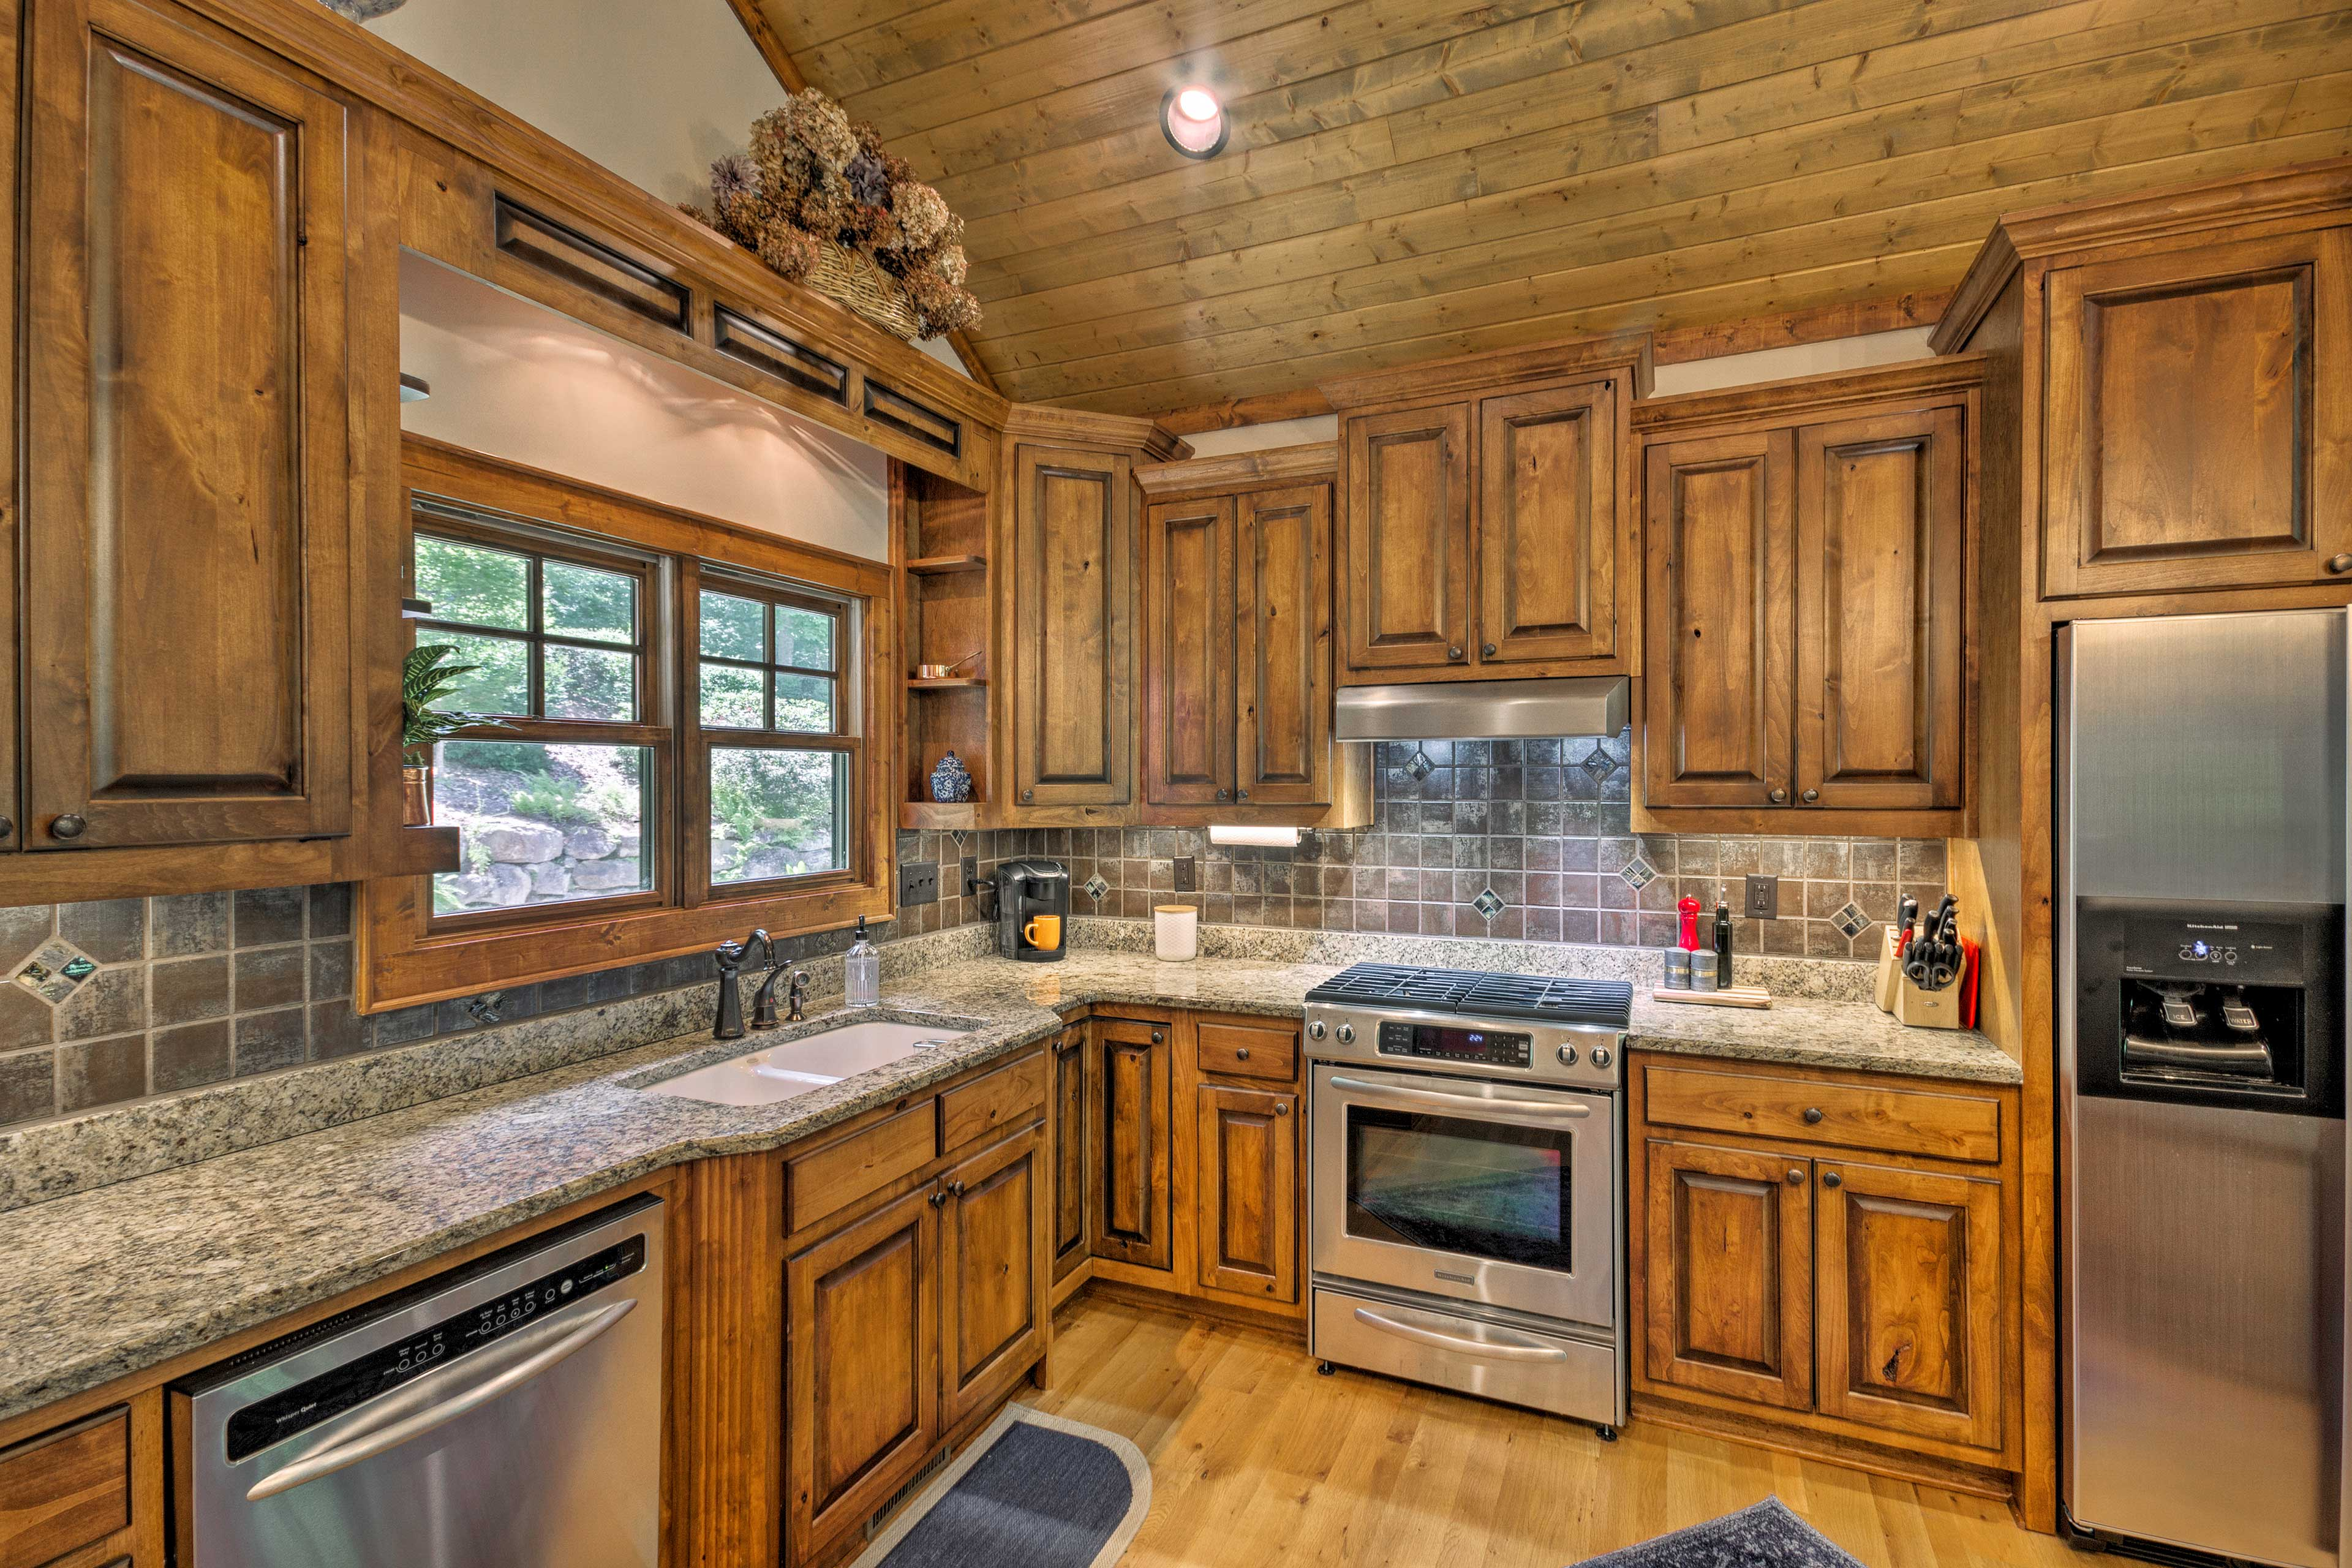 The kitchen has stainless steel appliances and a Keurig coffee maker.